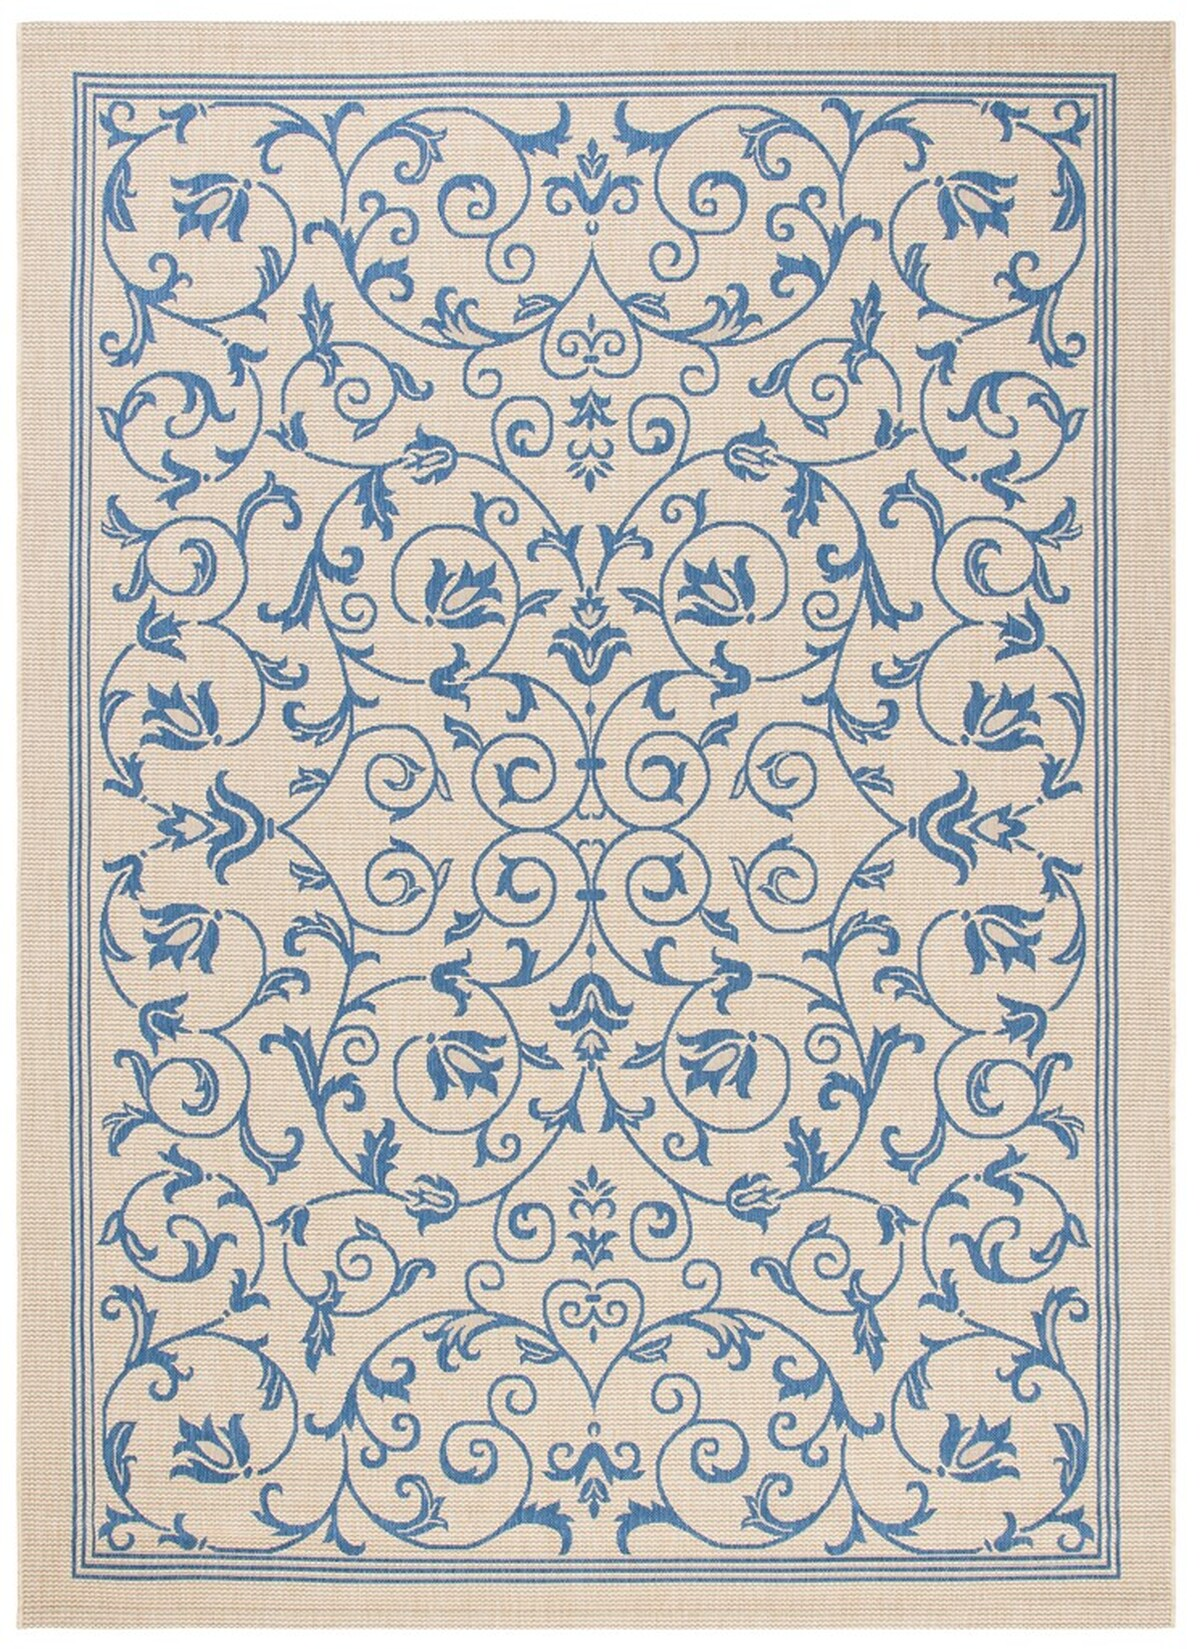 Arabesque Indoor Outdoor Rug - Safavieh.com